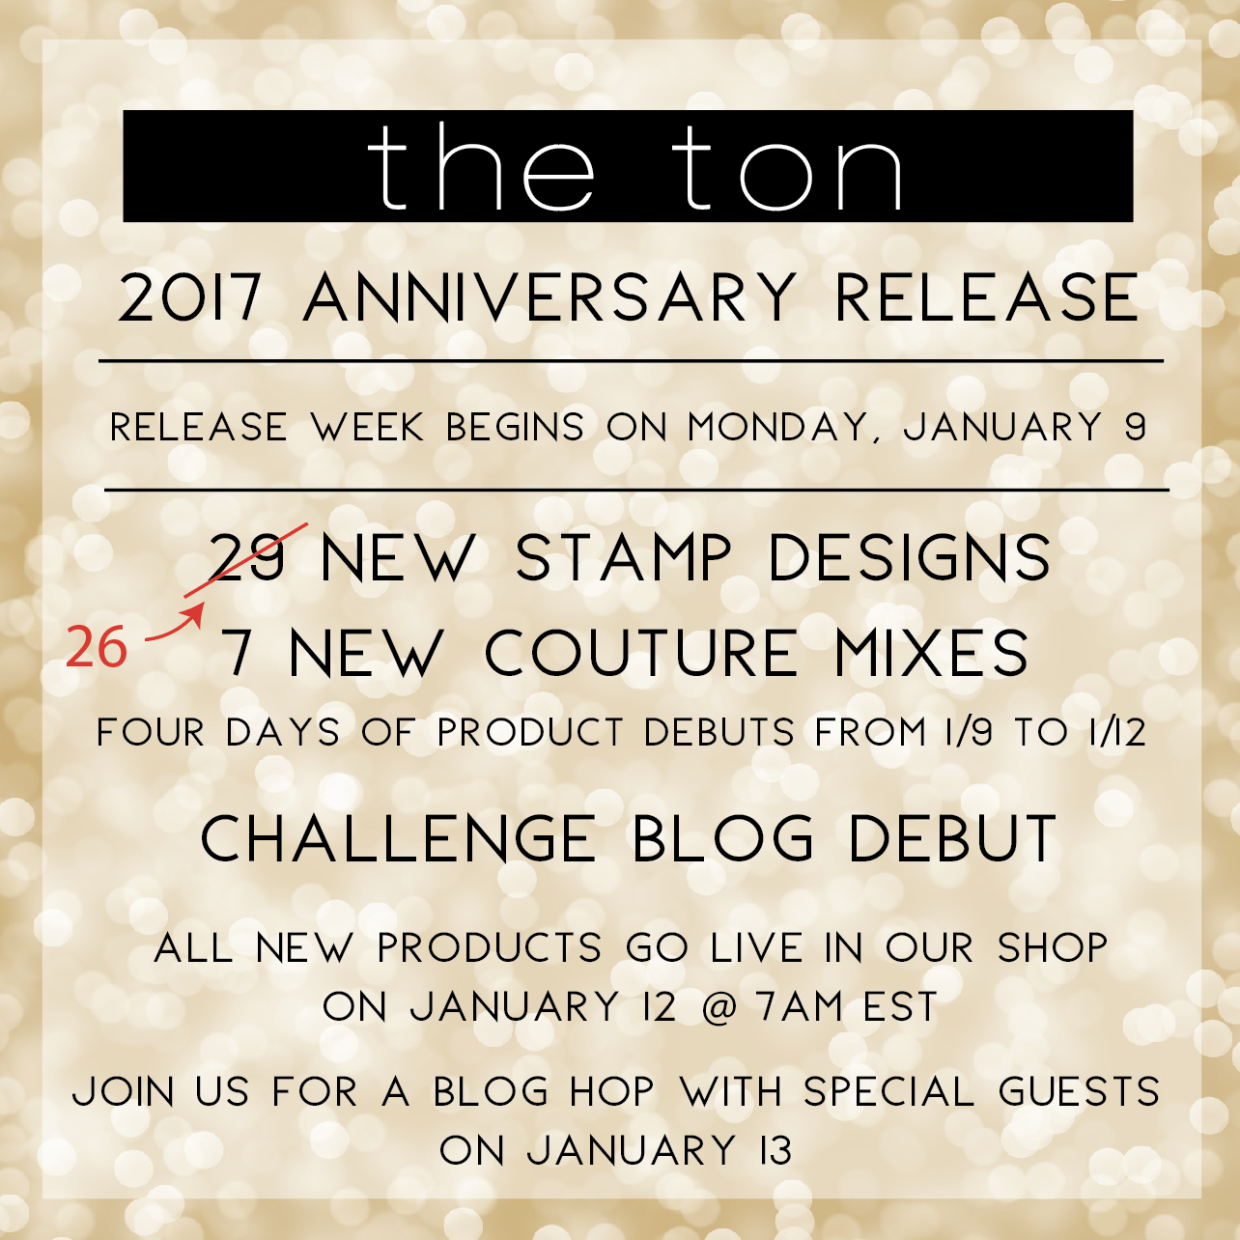 The Ton Anniversary Release Graphic